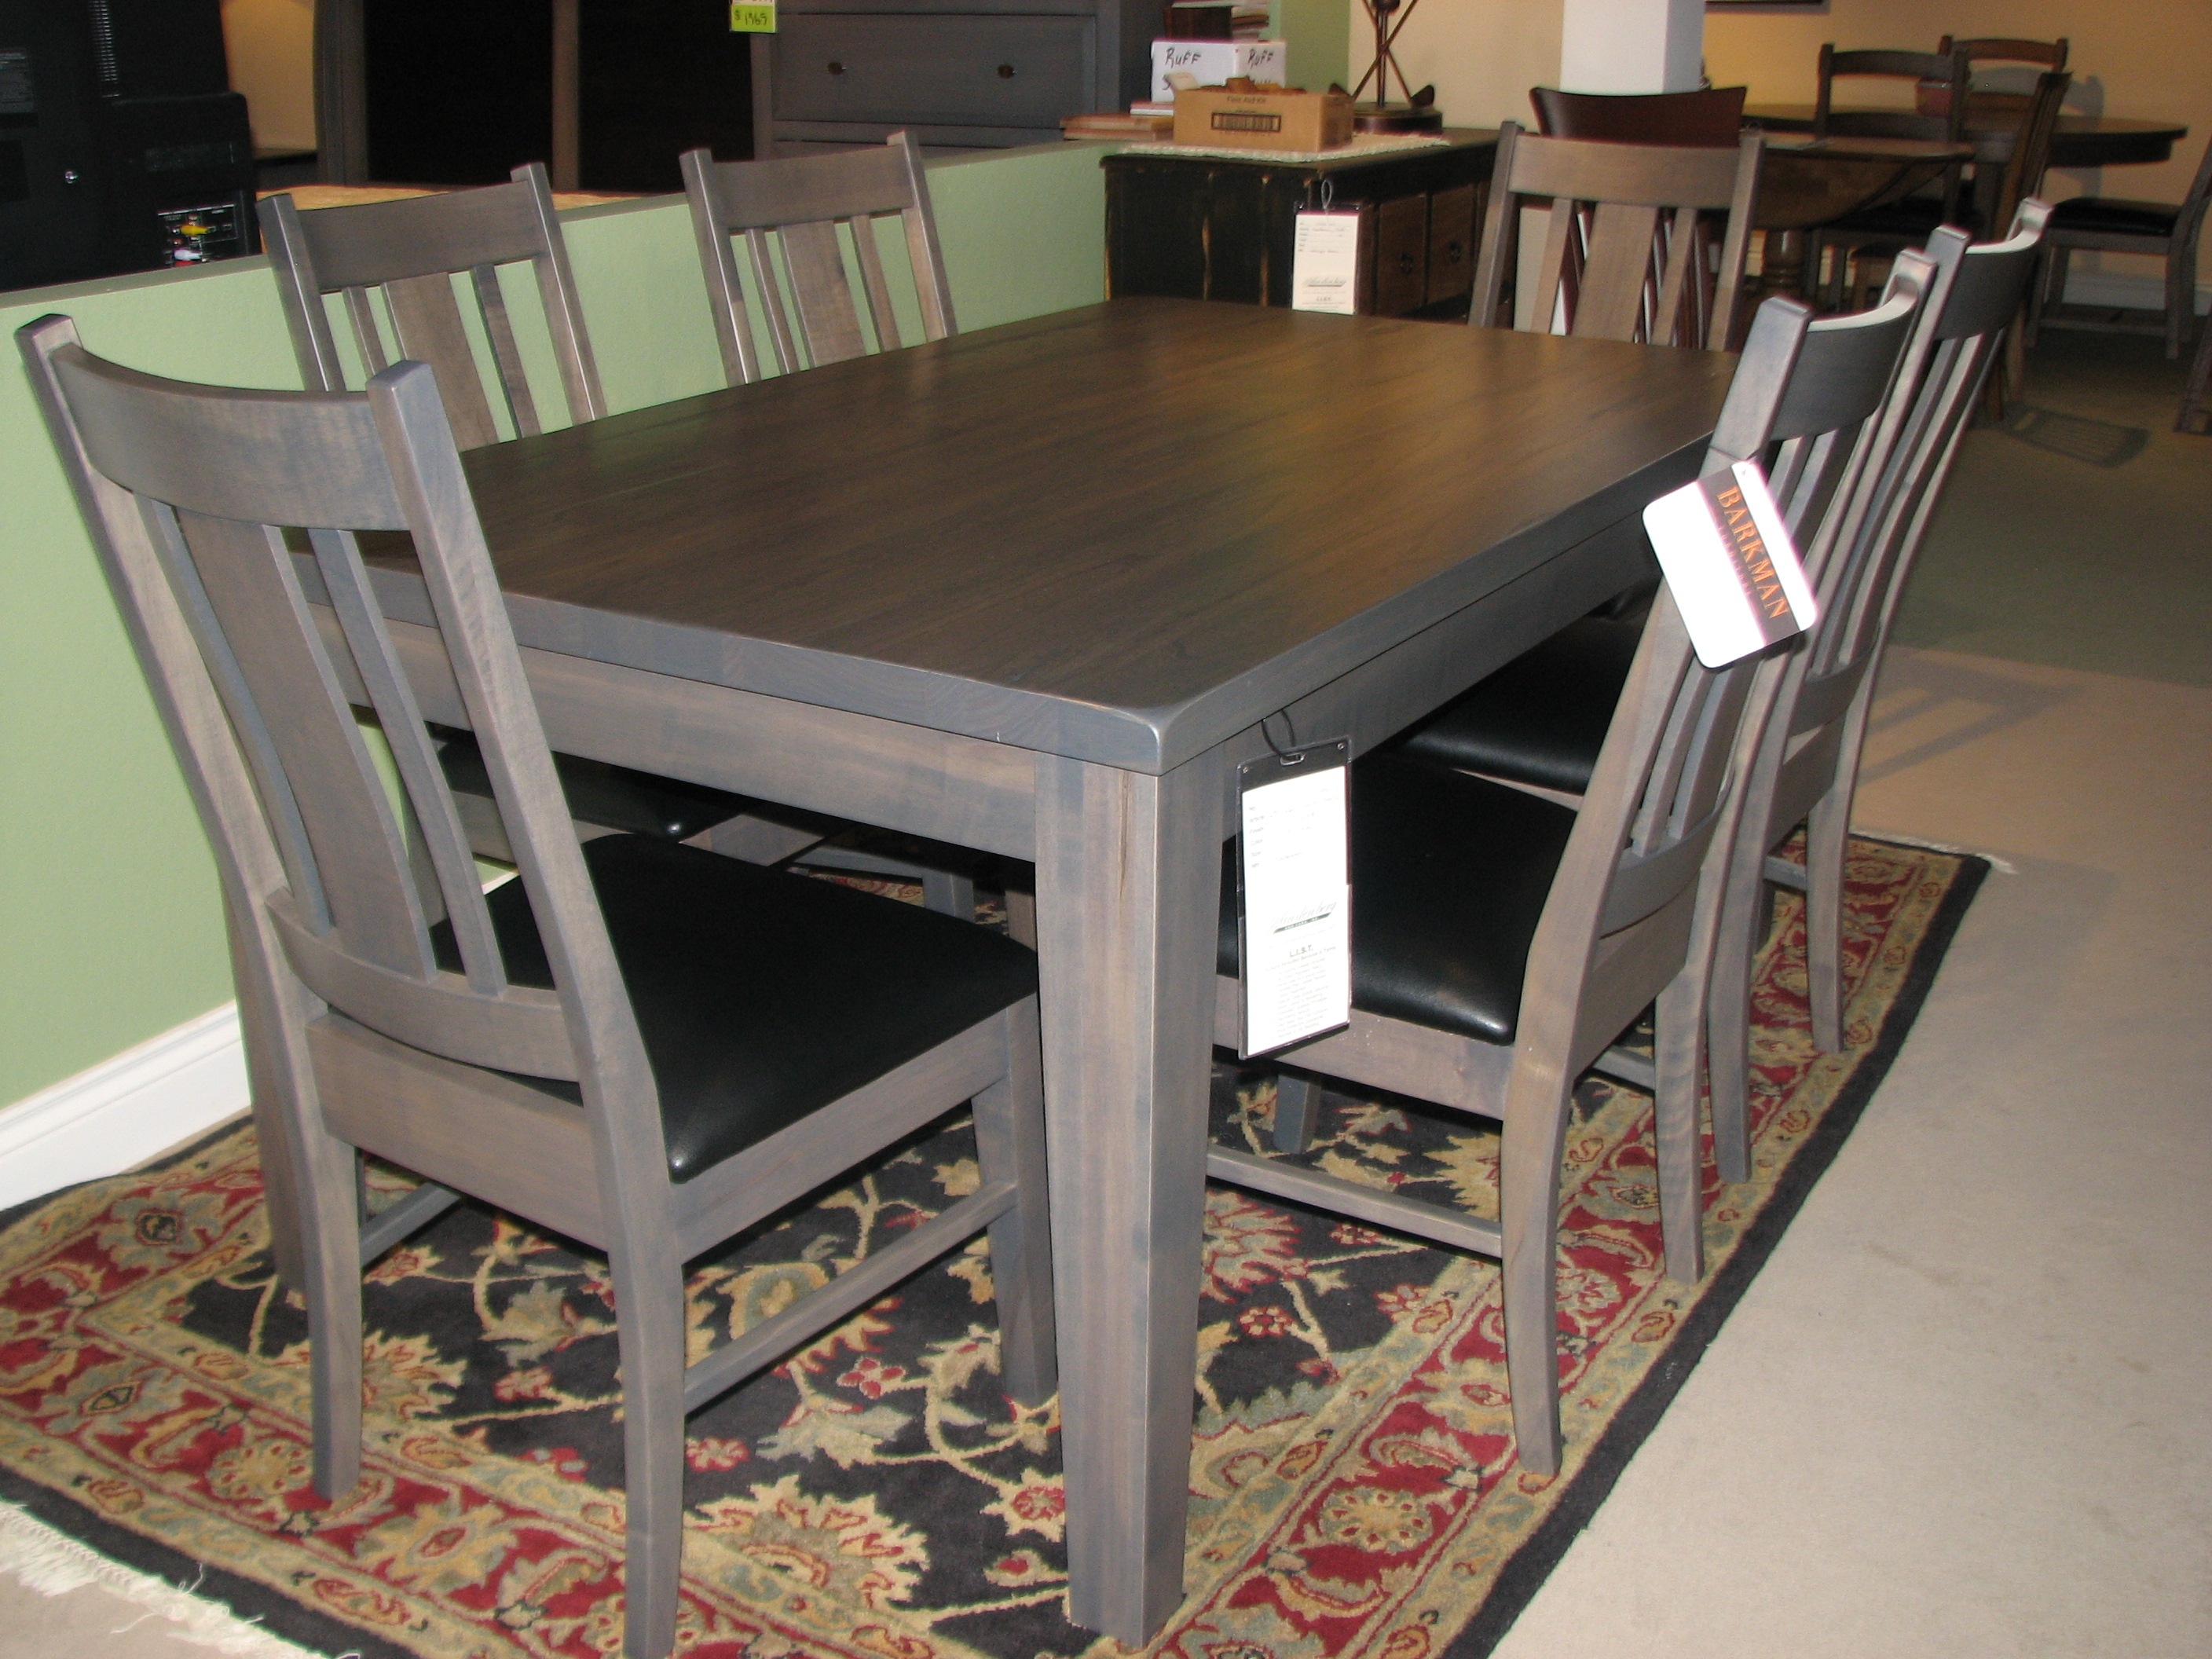 Barkman Gray Dining Table And Chairs With Leather Upholstered Seats